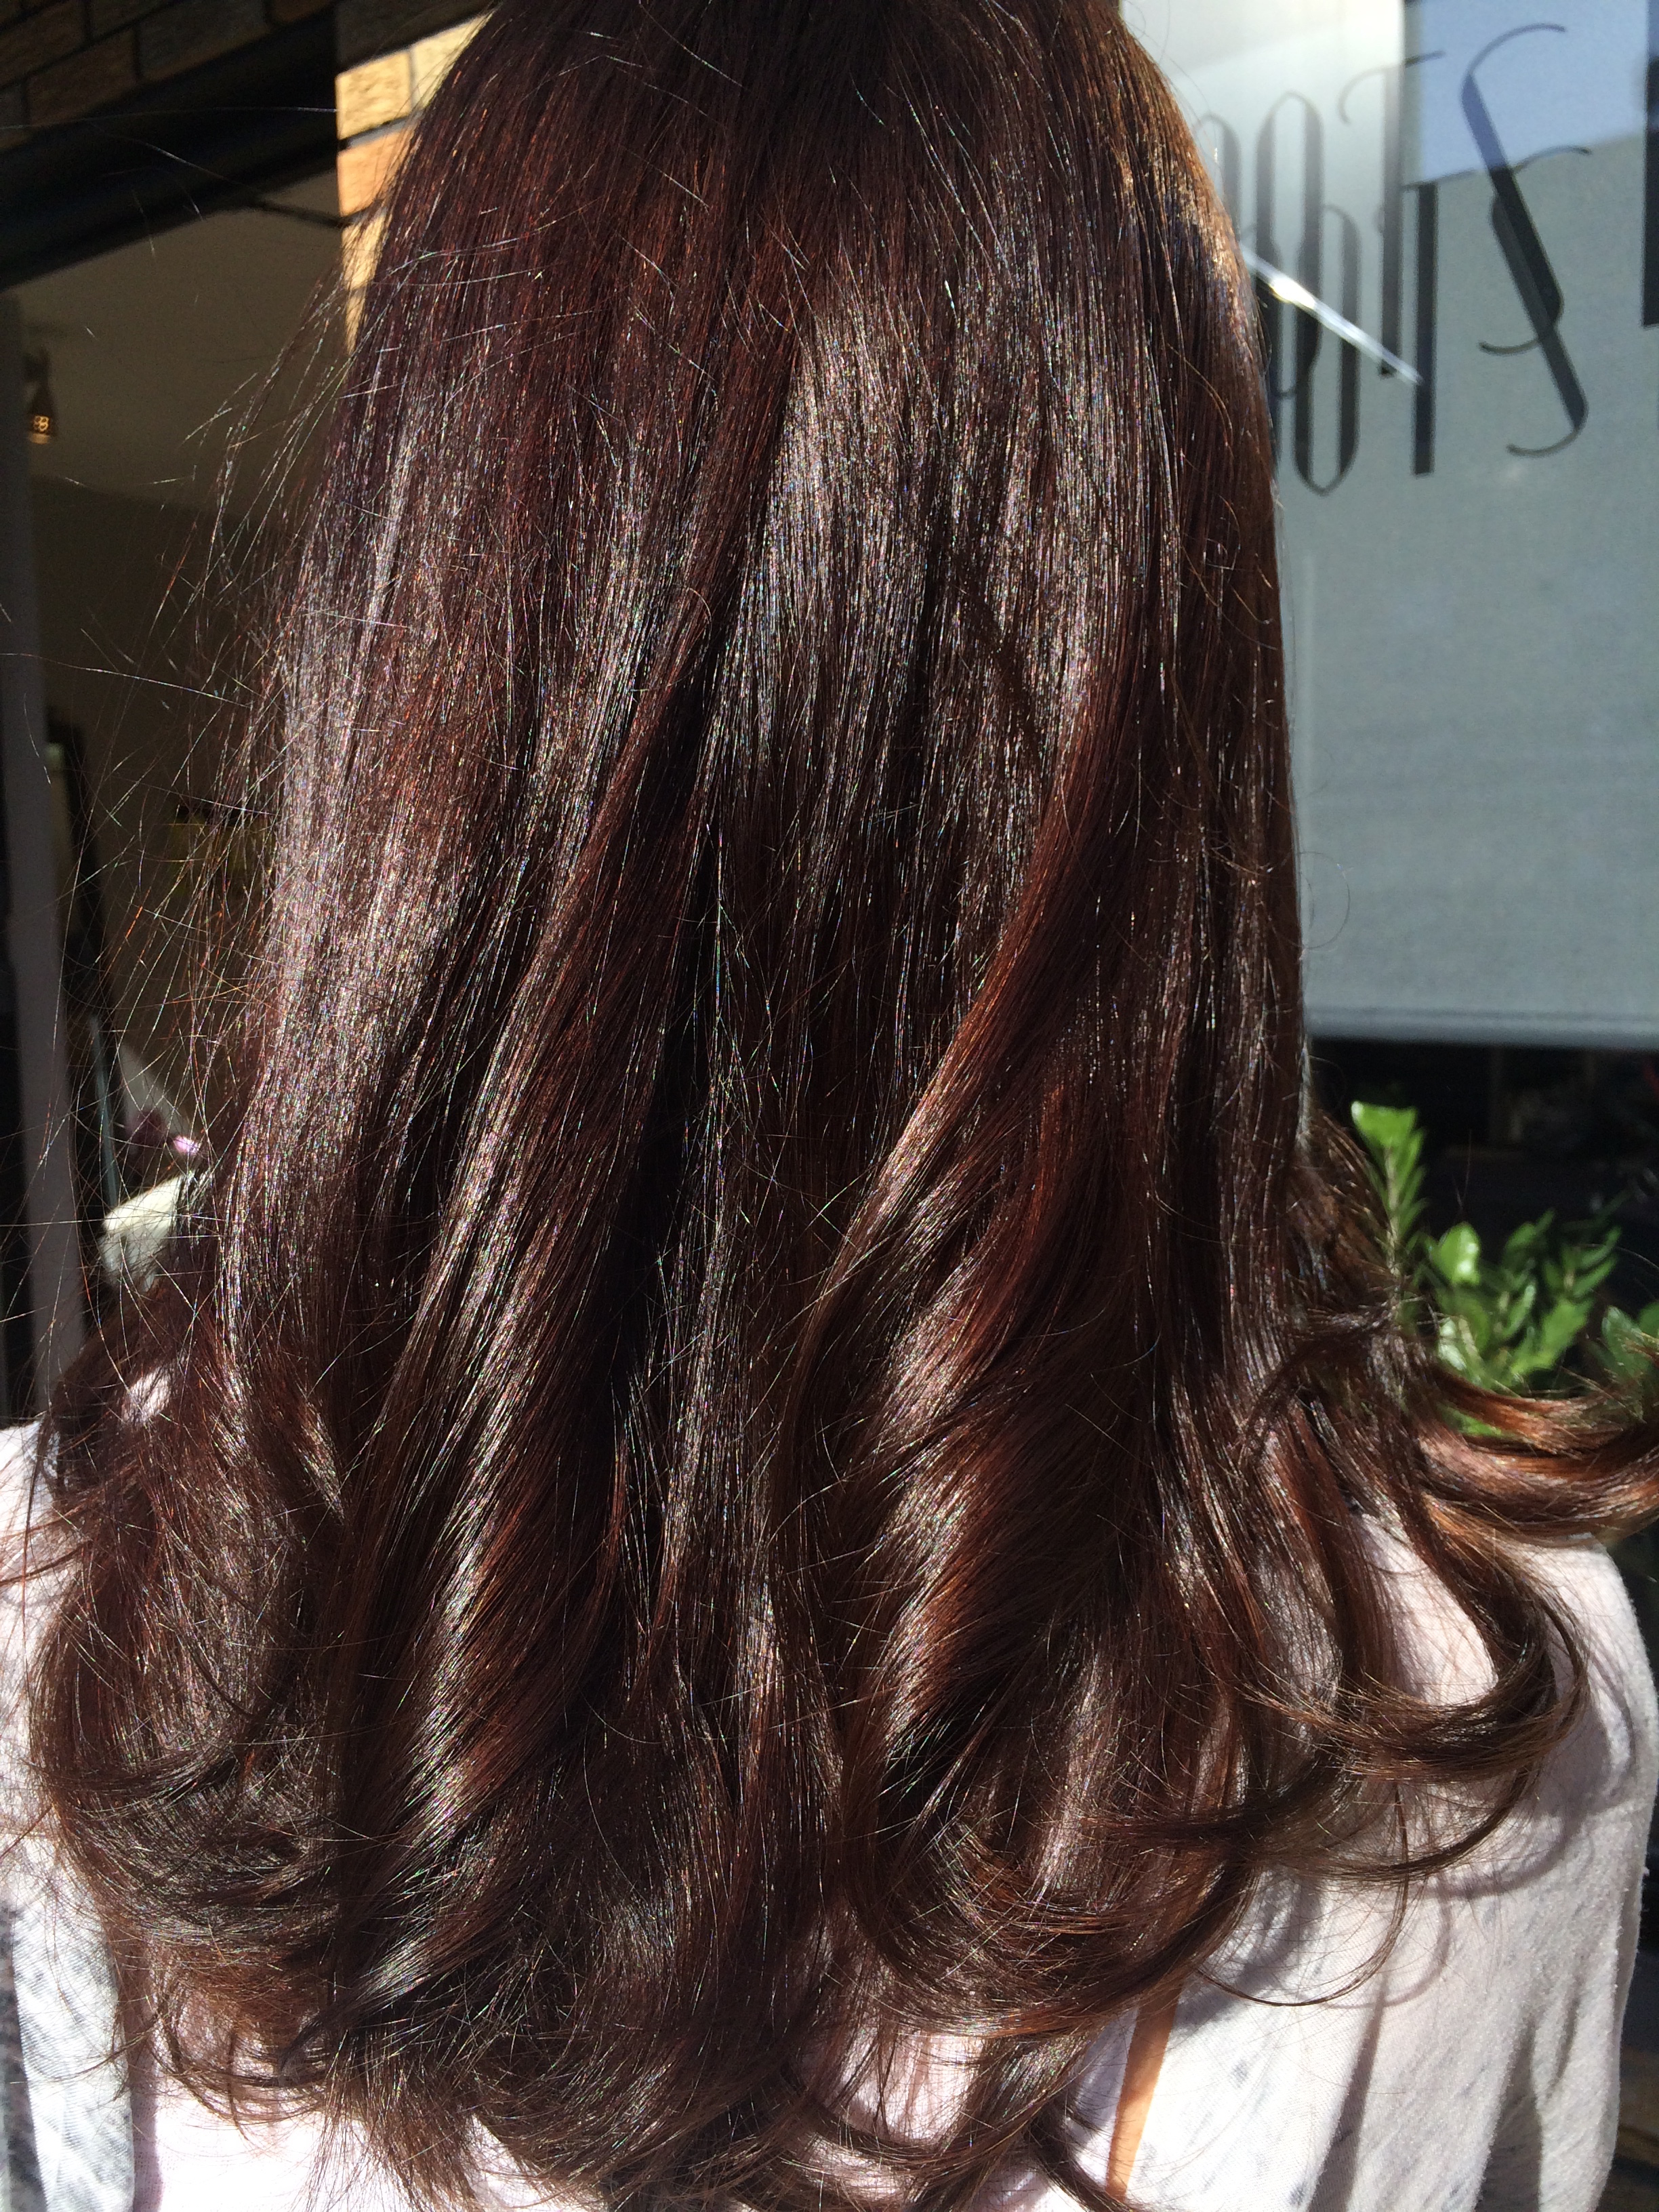 Rich brown color by Kim